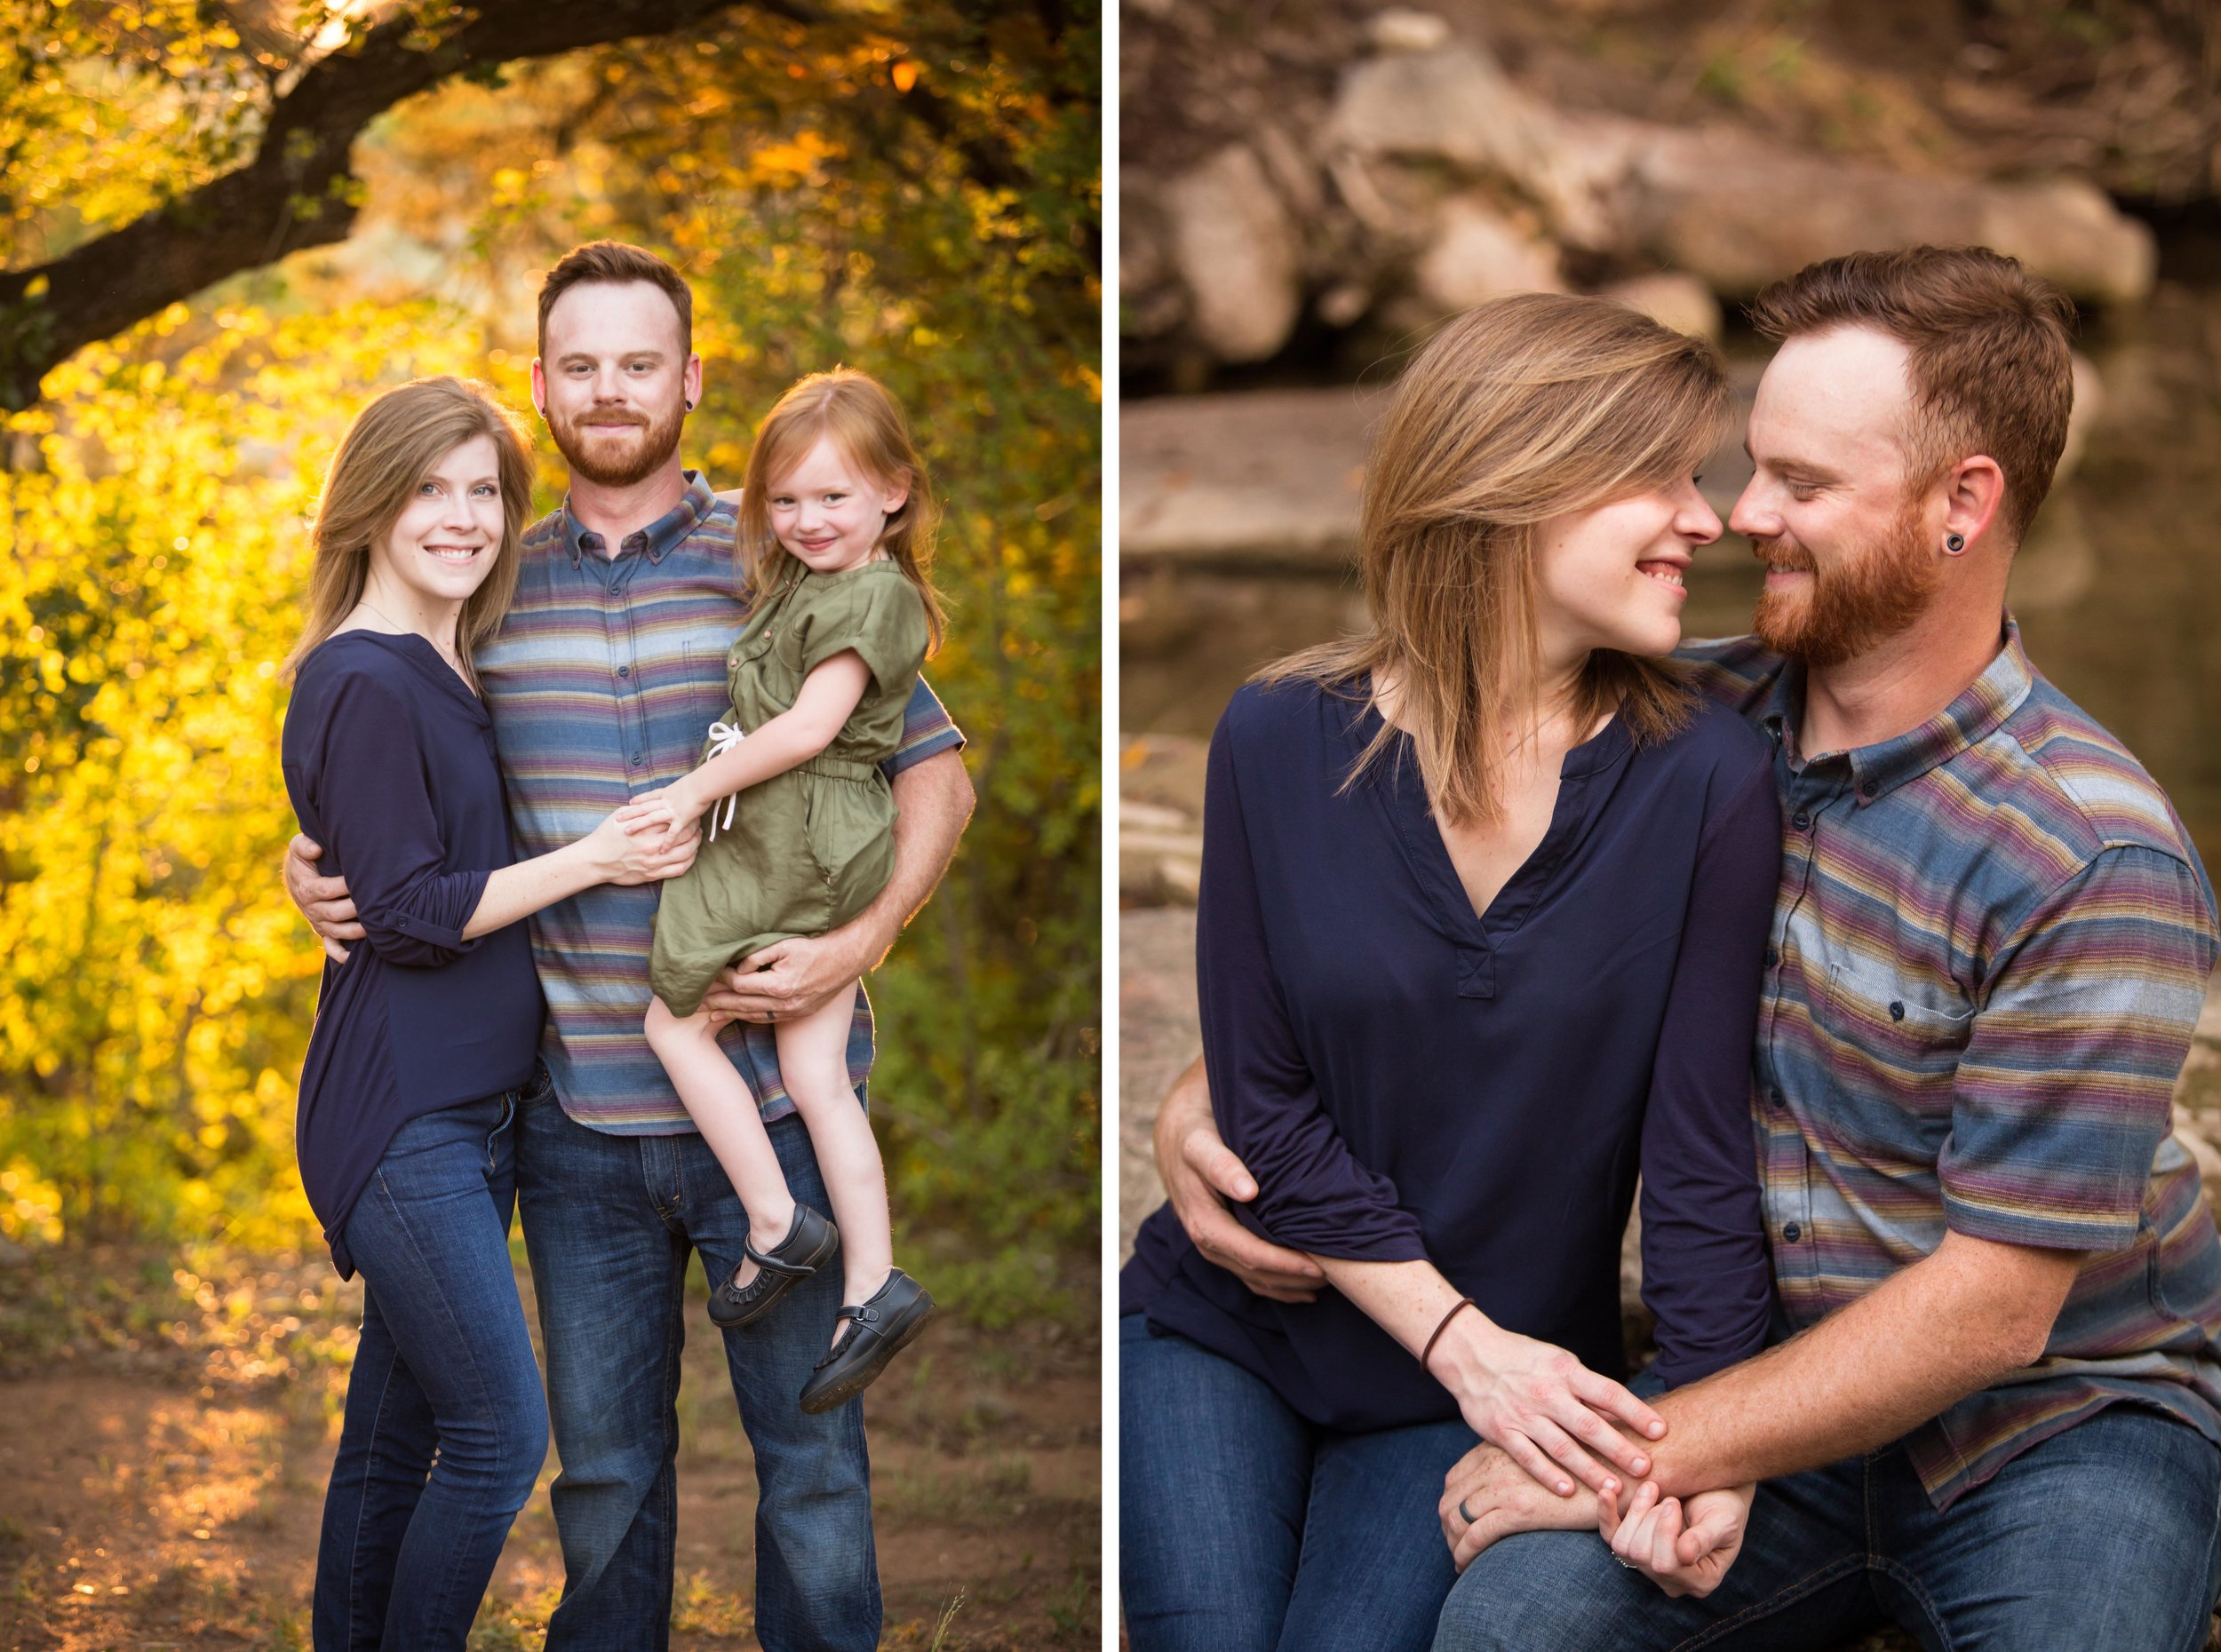 Marble_Falls_Stobaugh_Family_Photographer_Jenna_Petty_20.jpg